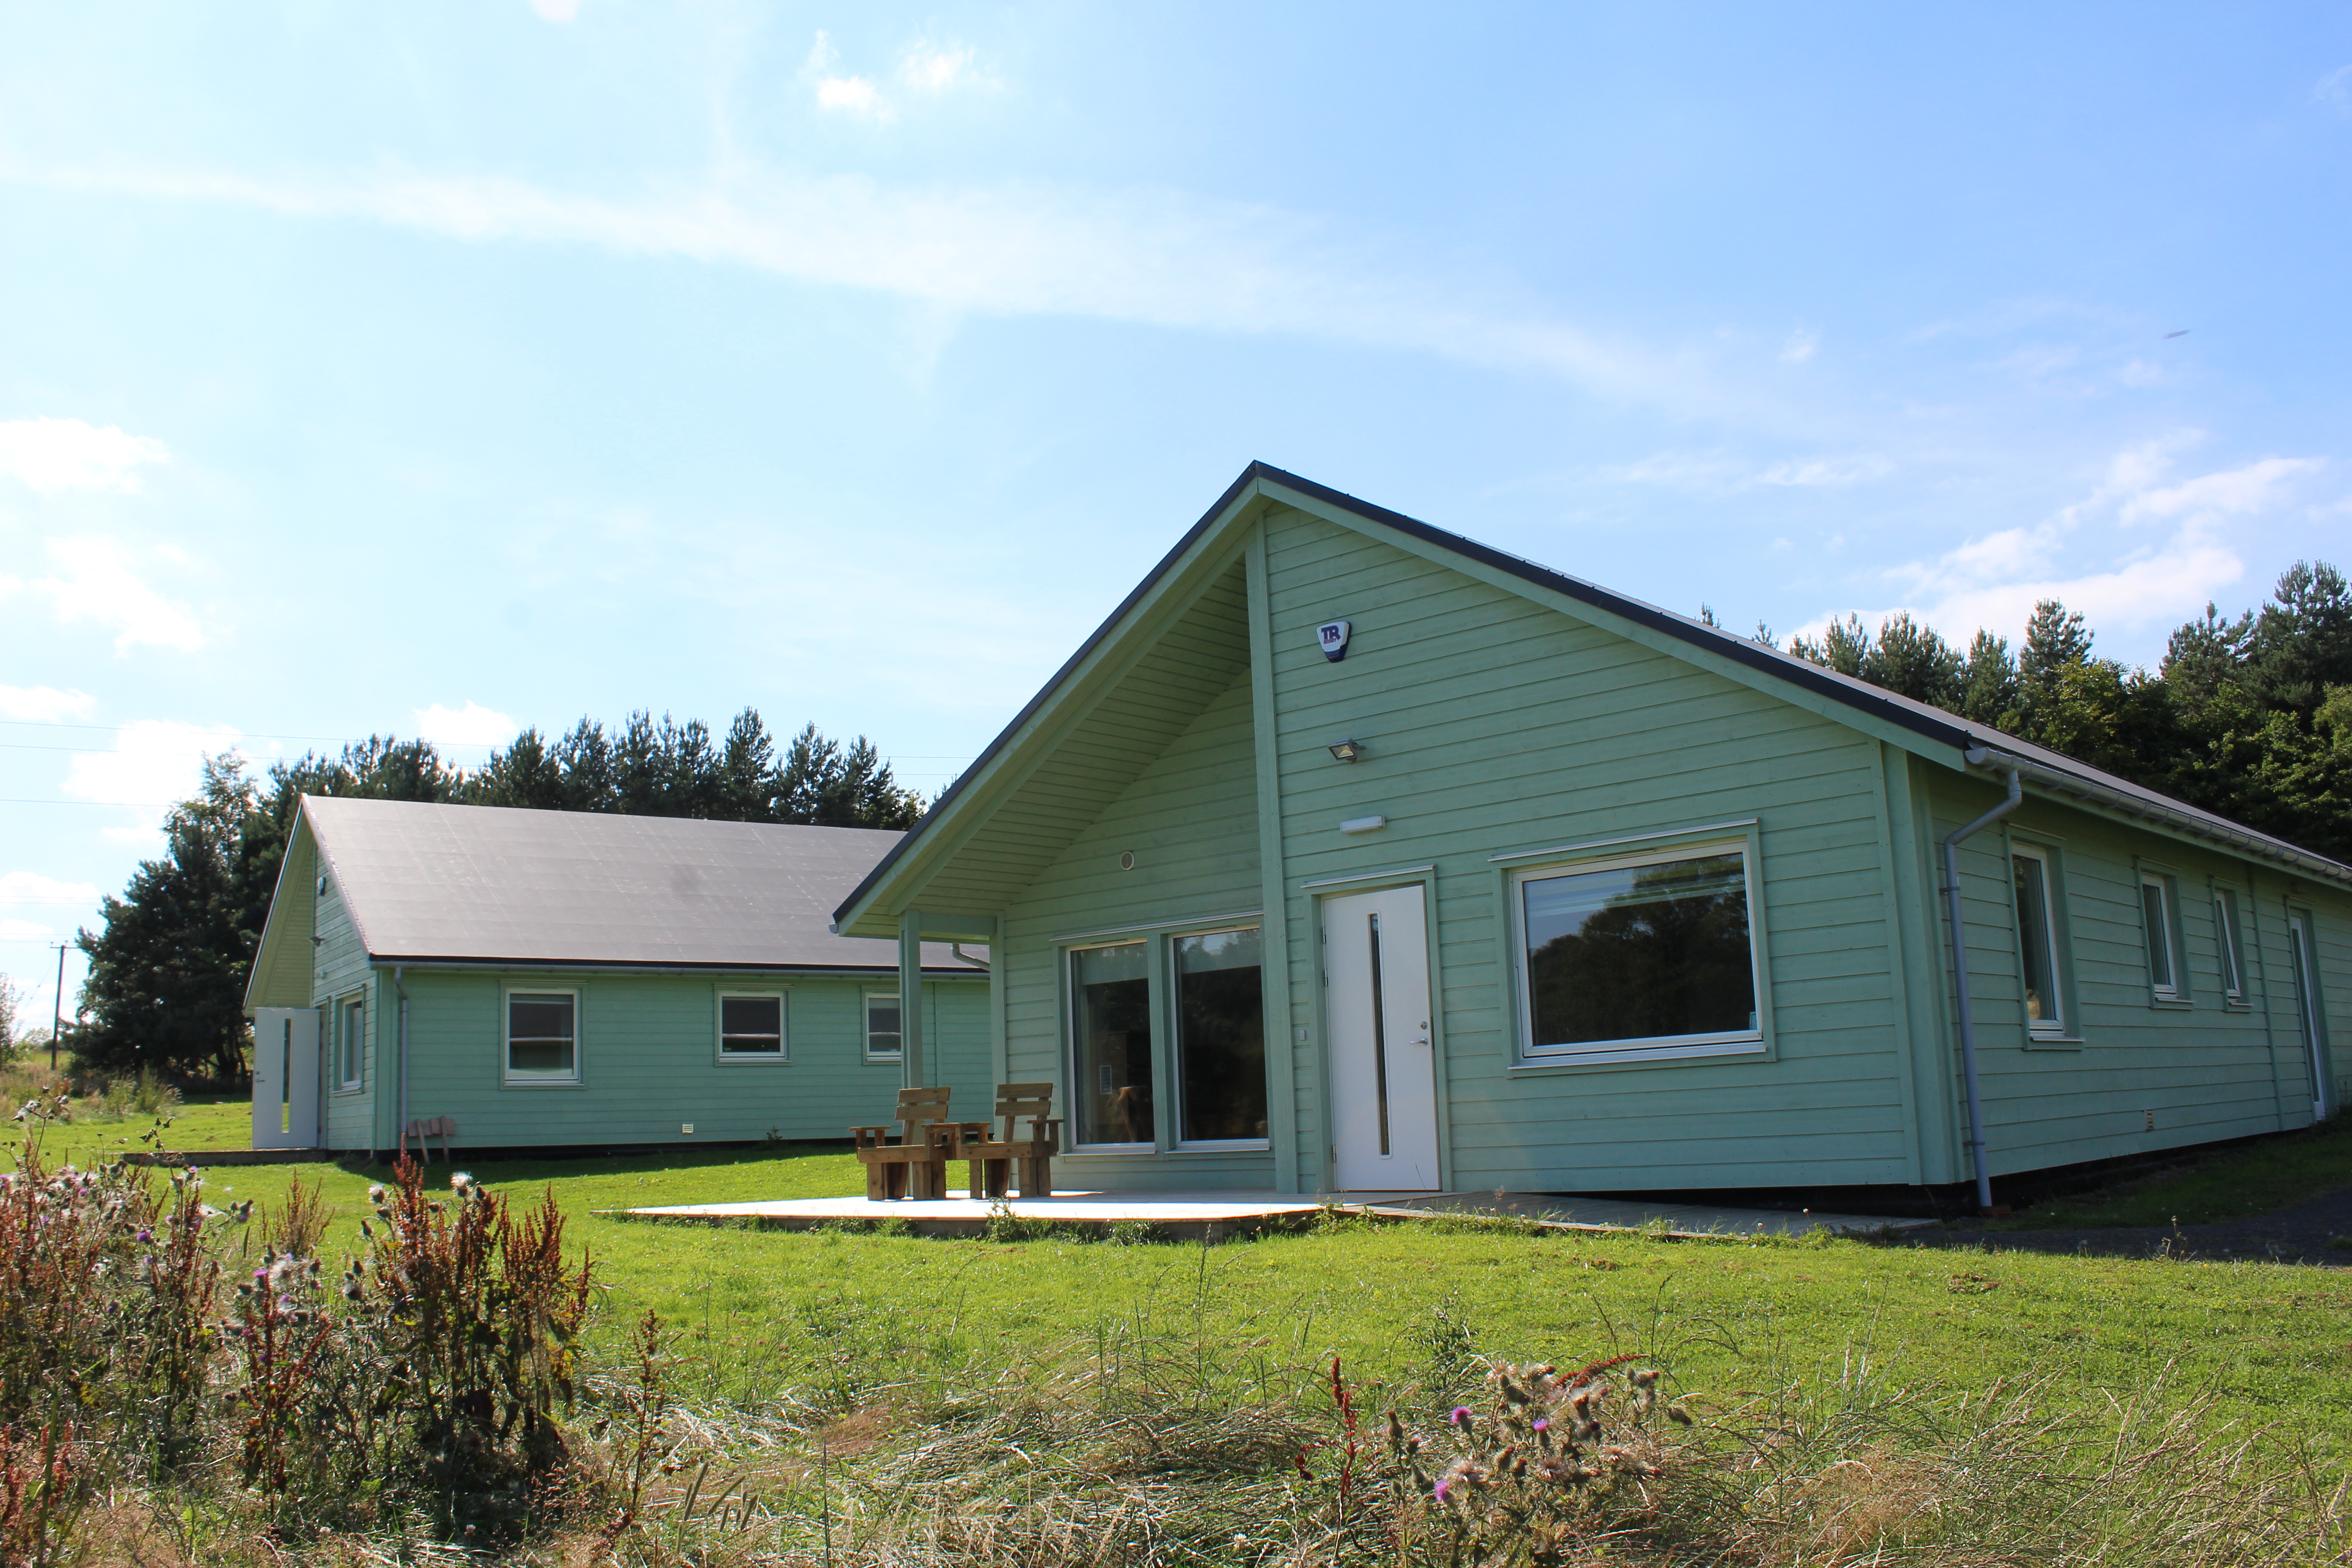 North East Autism Society Receive Grant for Therapeutic Lodges